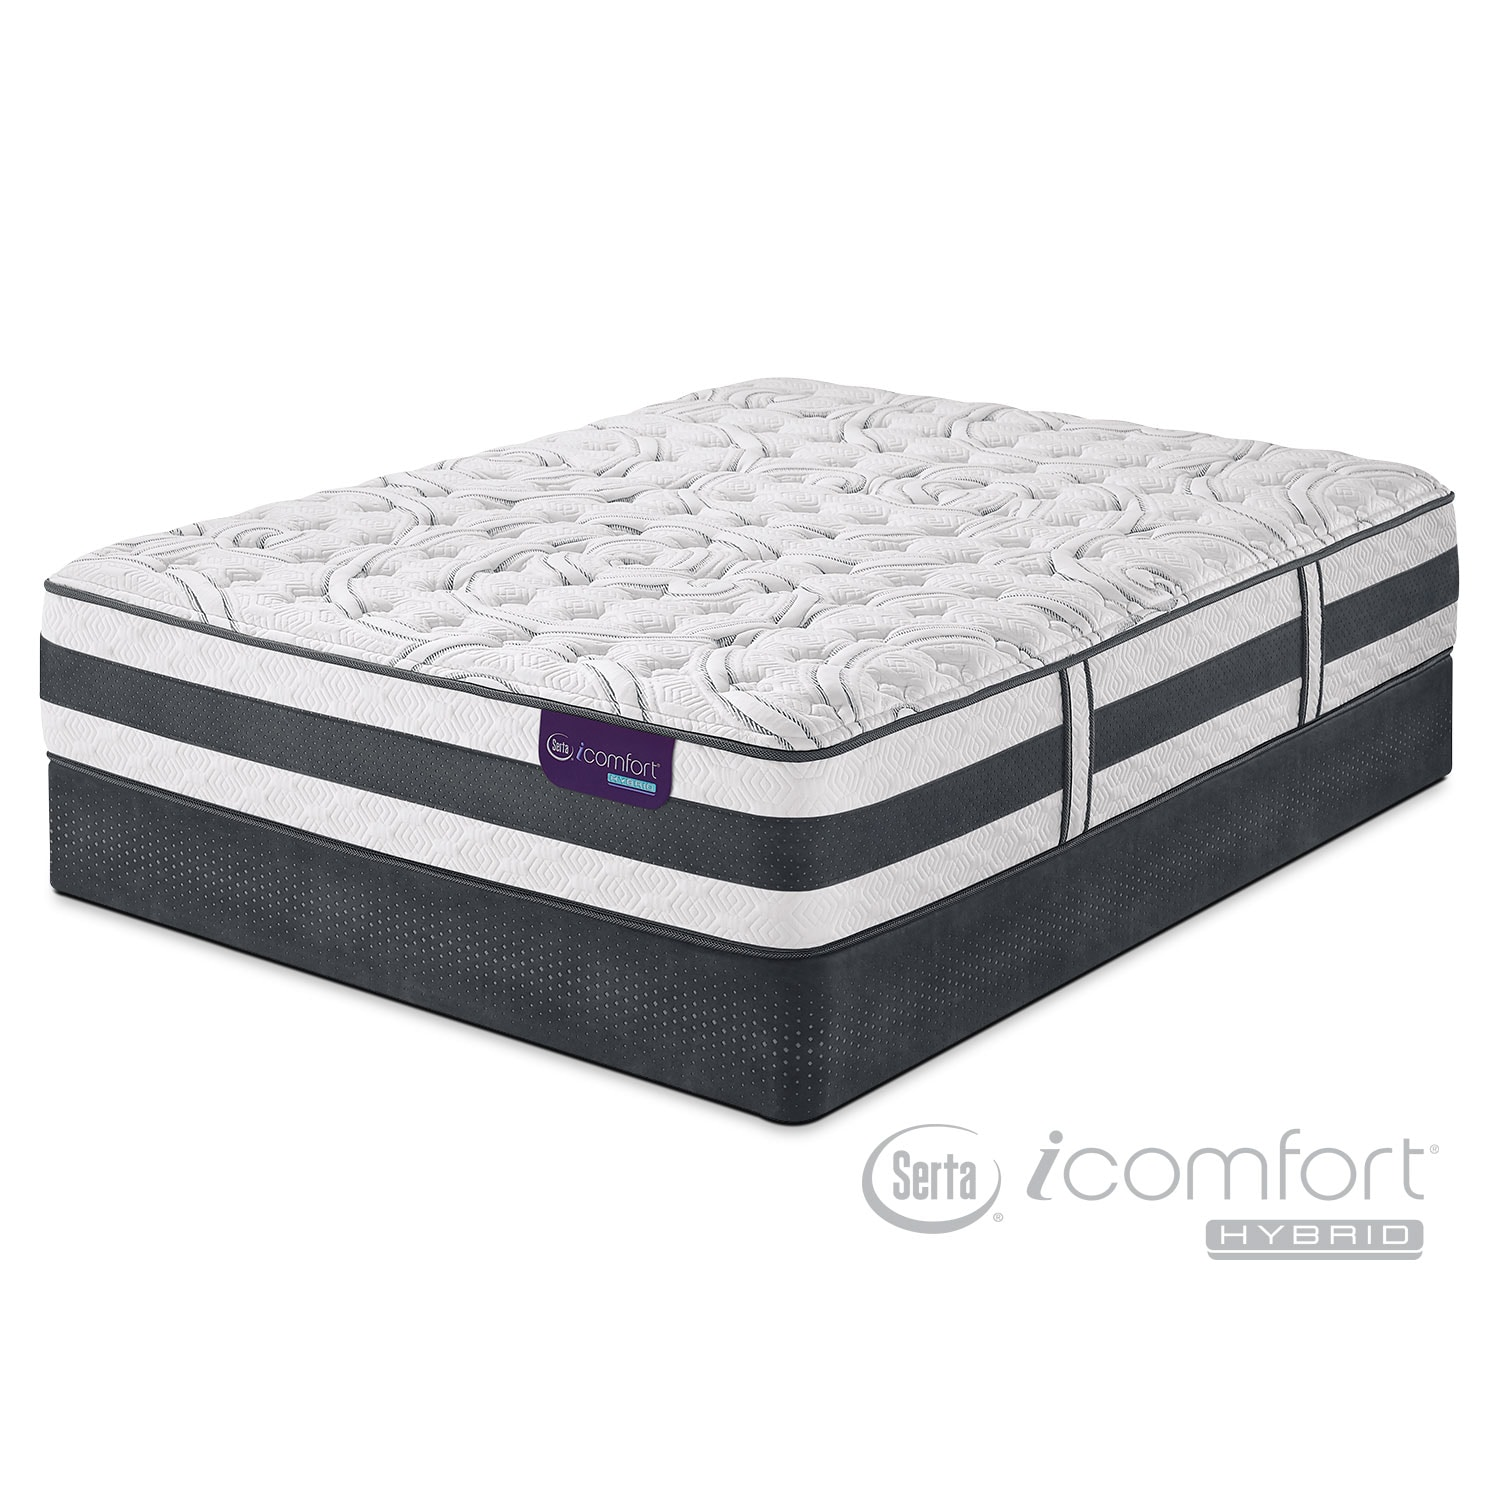 Mattresses and Bedding - Applause II Firm Full Mattress/Foundation Set